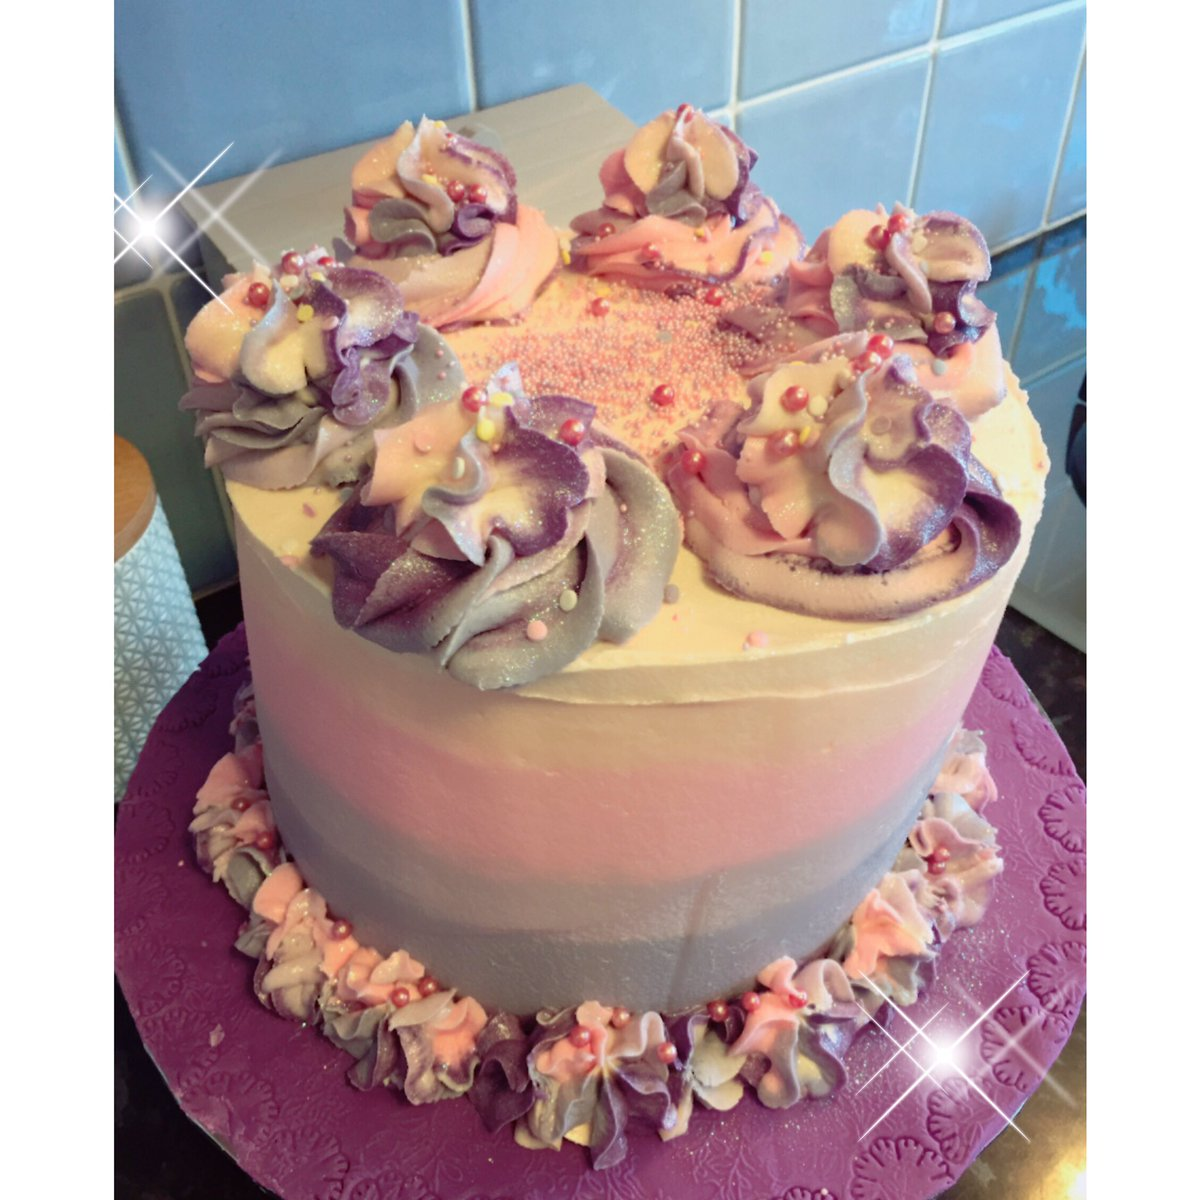 Nikki On Twitter Pink Pastels Ombr Cake Made For A Birthday This